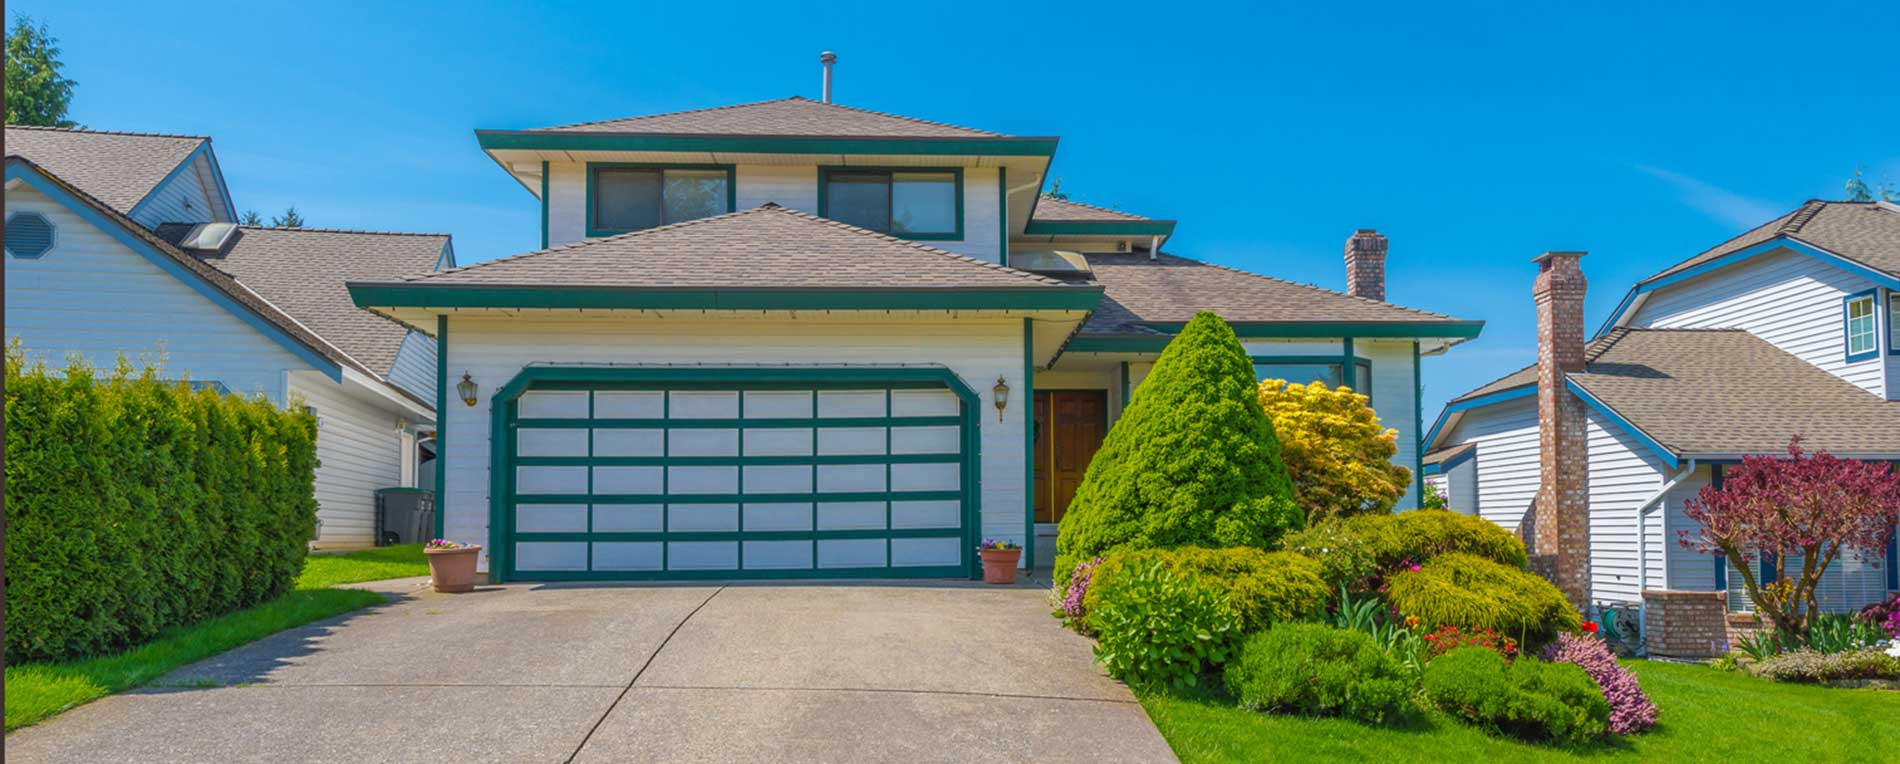 Garage Door Repair Andover, MN